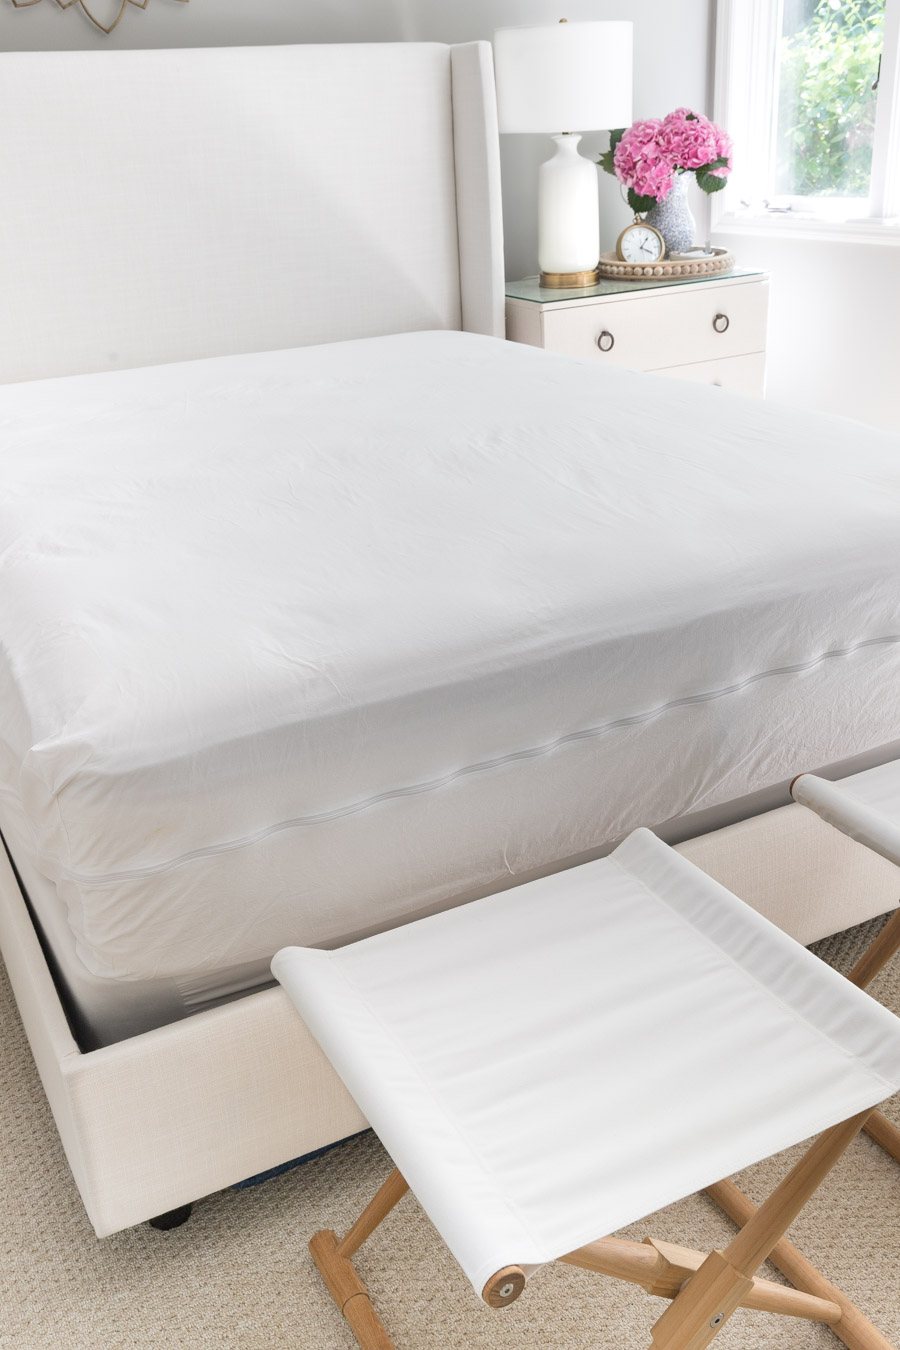 Making the perfect bed starts with protecting your mattress!